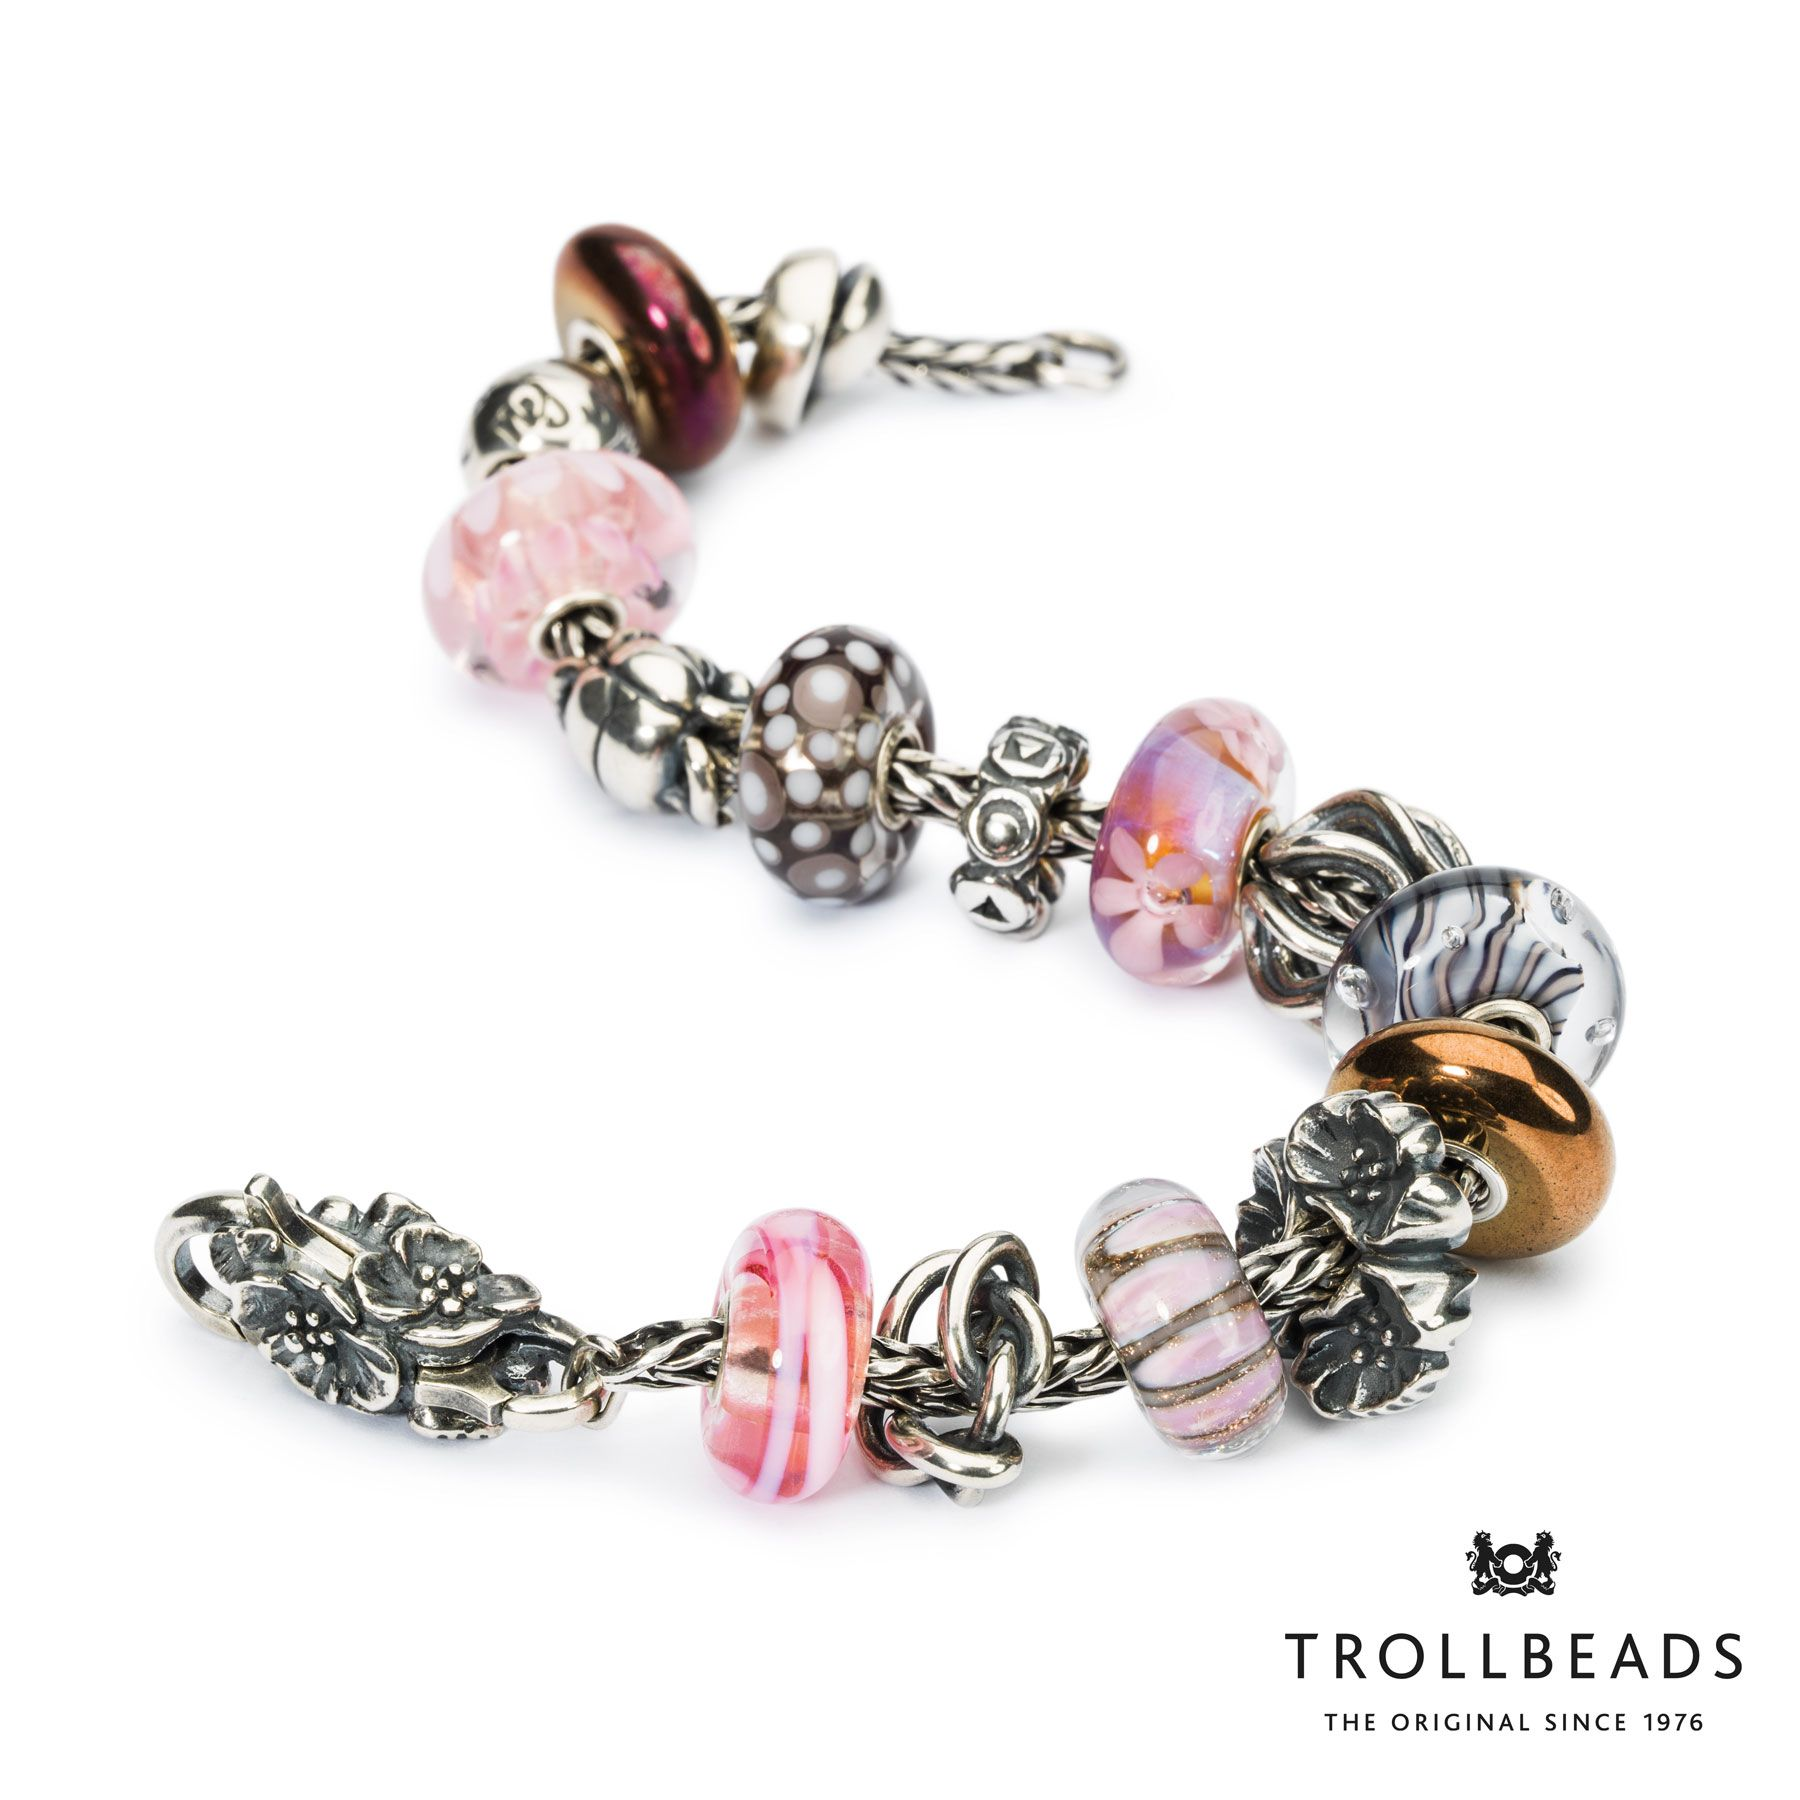 Bracelet by Trollbeads - 2015 Spring Collection.